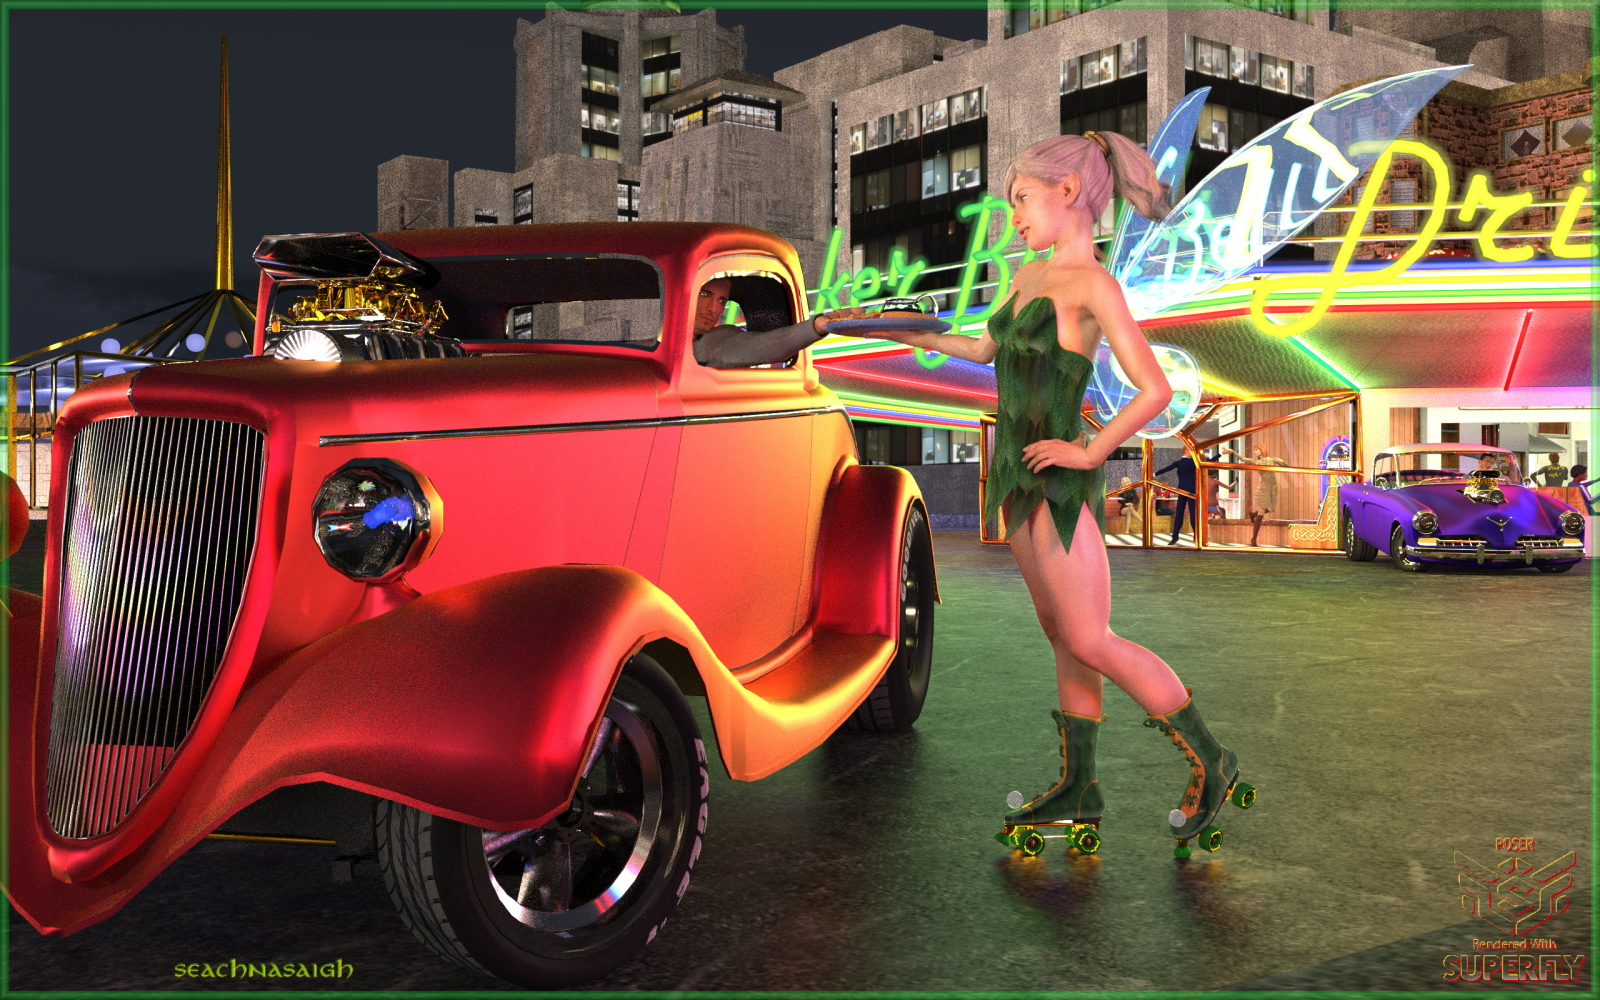 Tink carhop Superfly PhysSurf 1600x1000.jpg